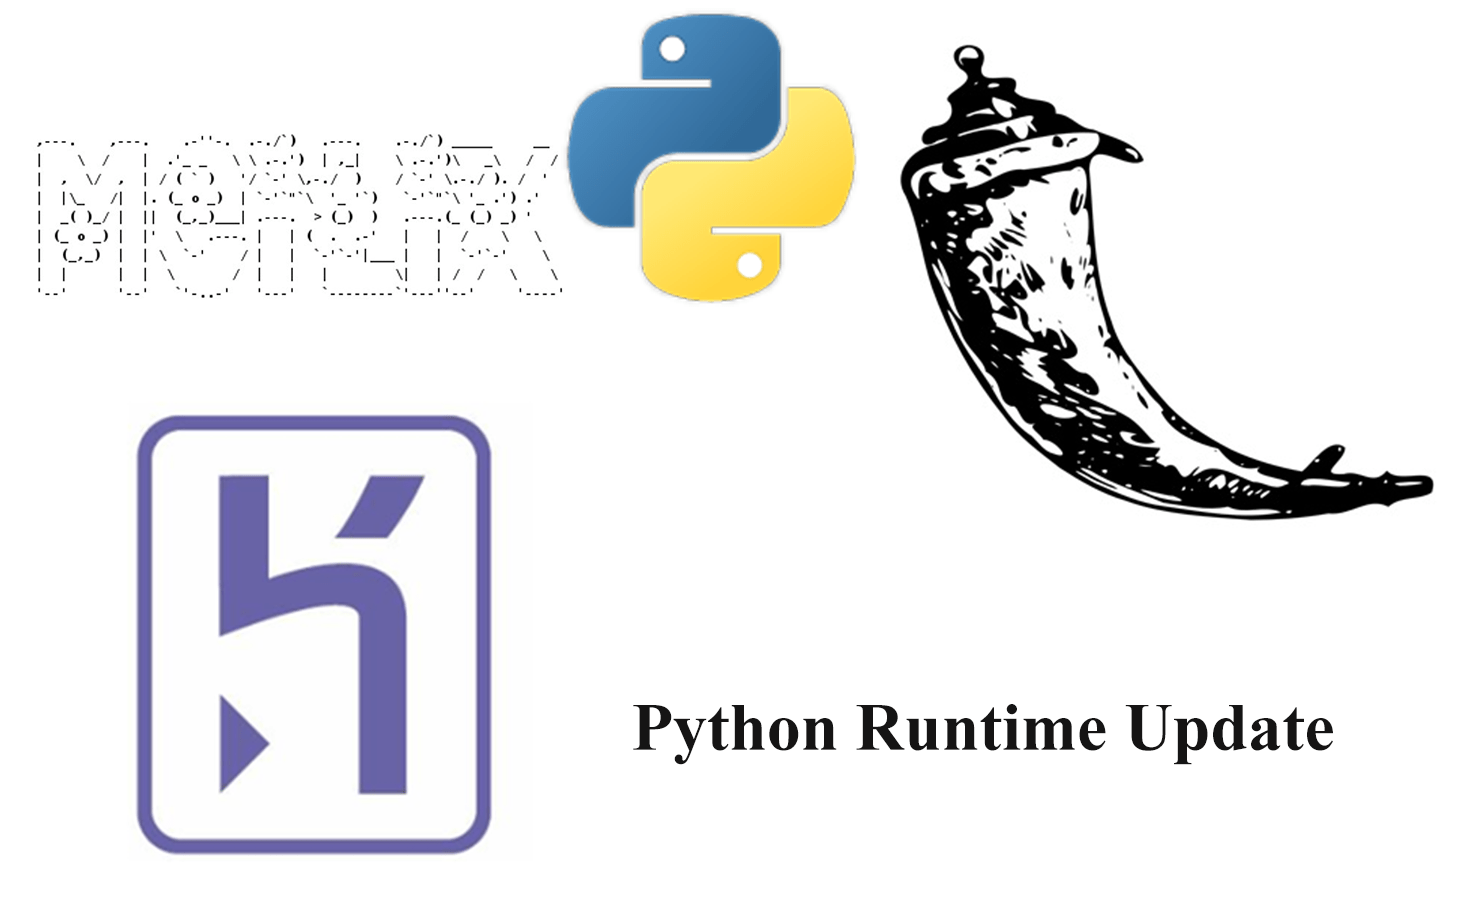 Update of Python Runtime in Meilix